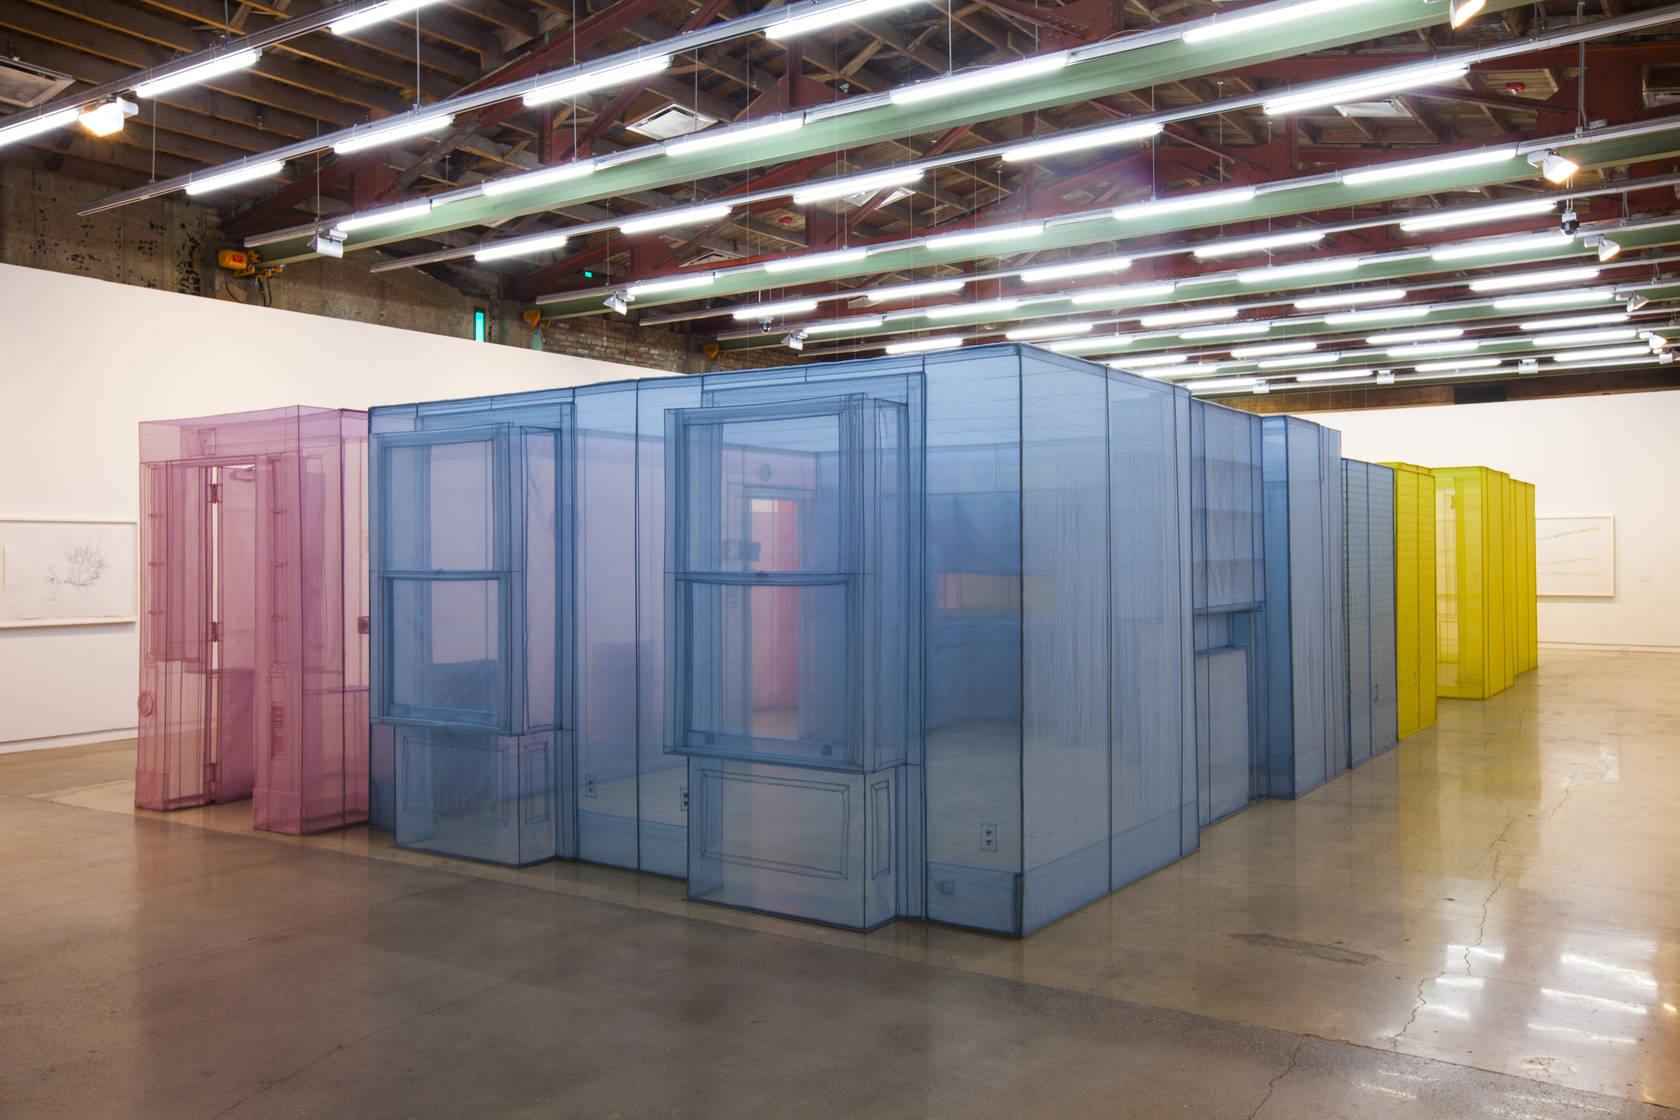 Installation view of Do Ho Suh at The Contemporary Austin